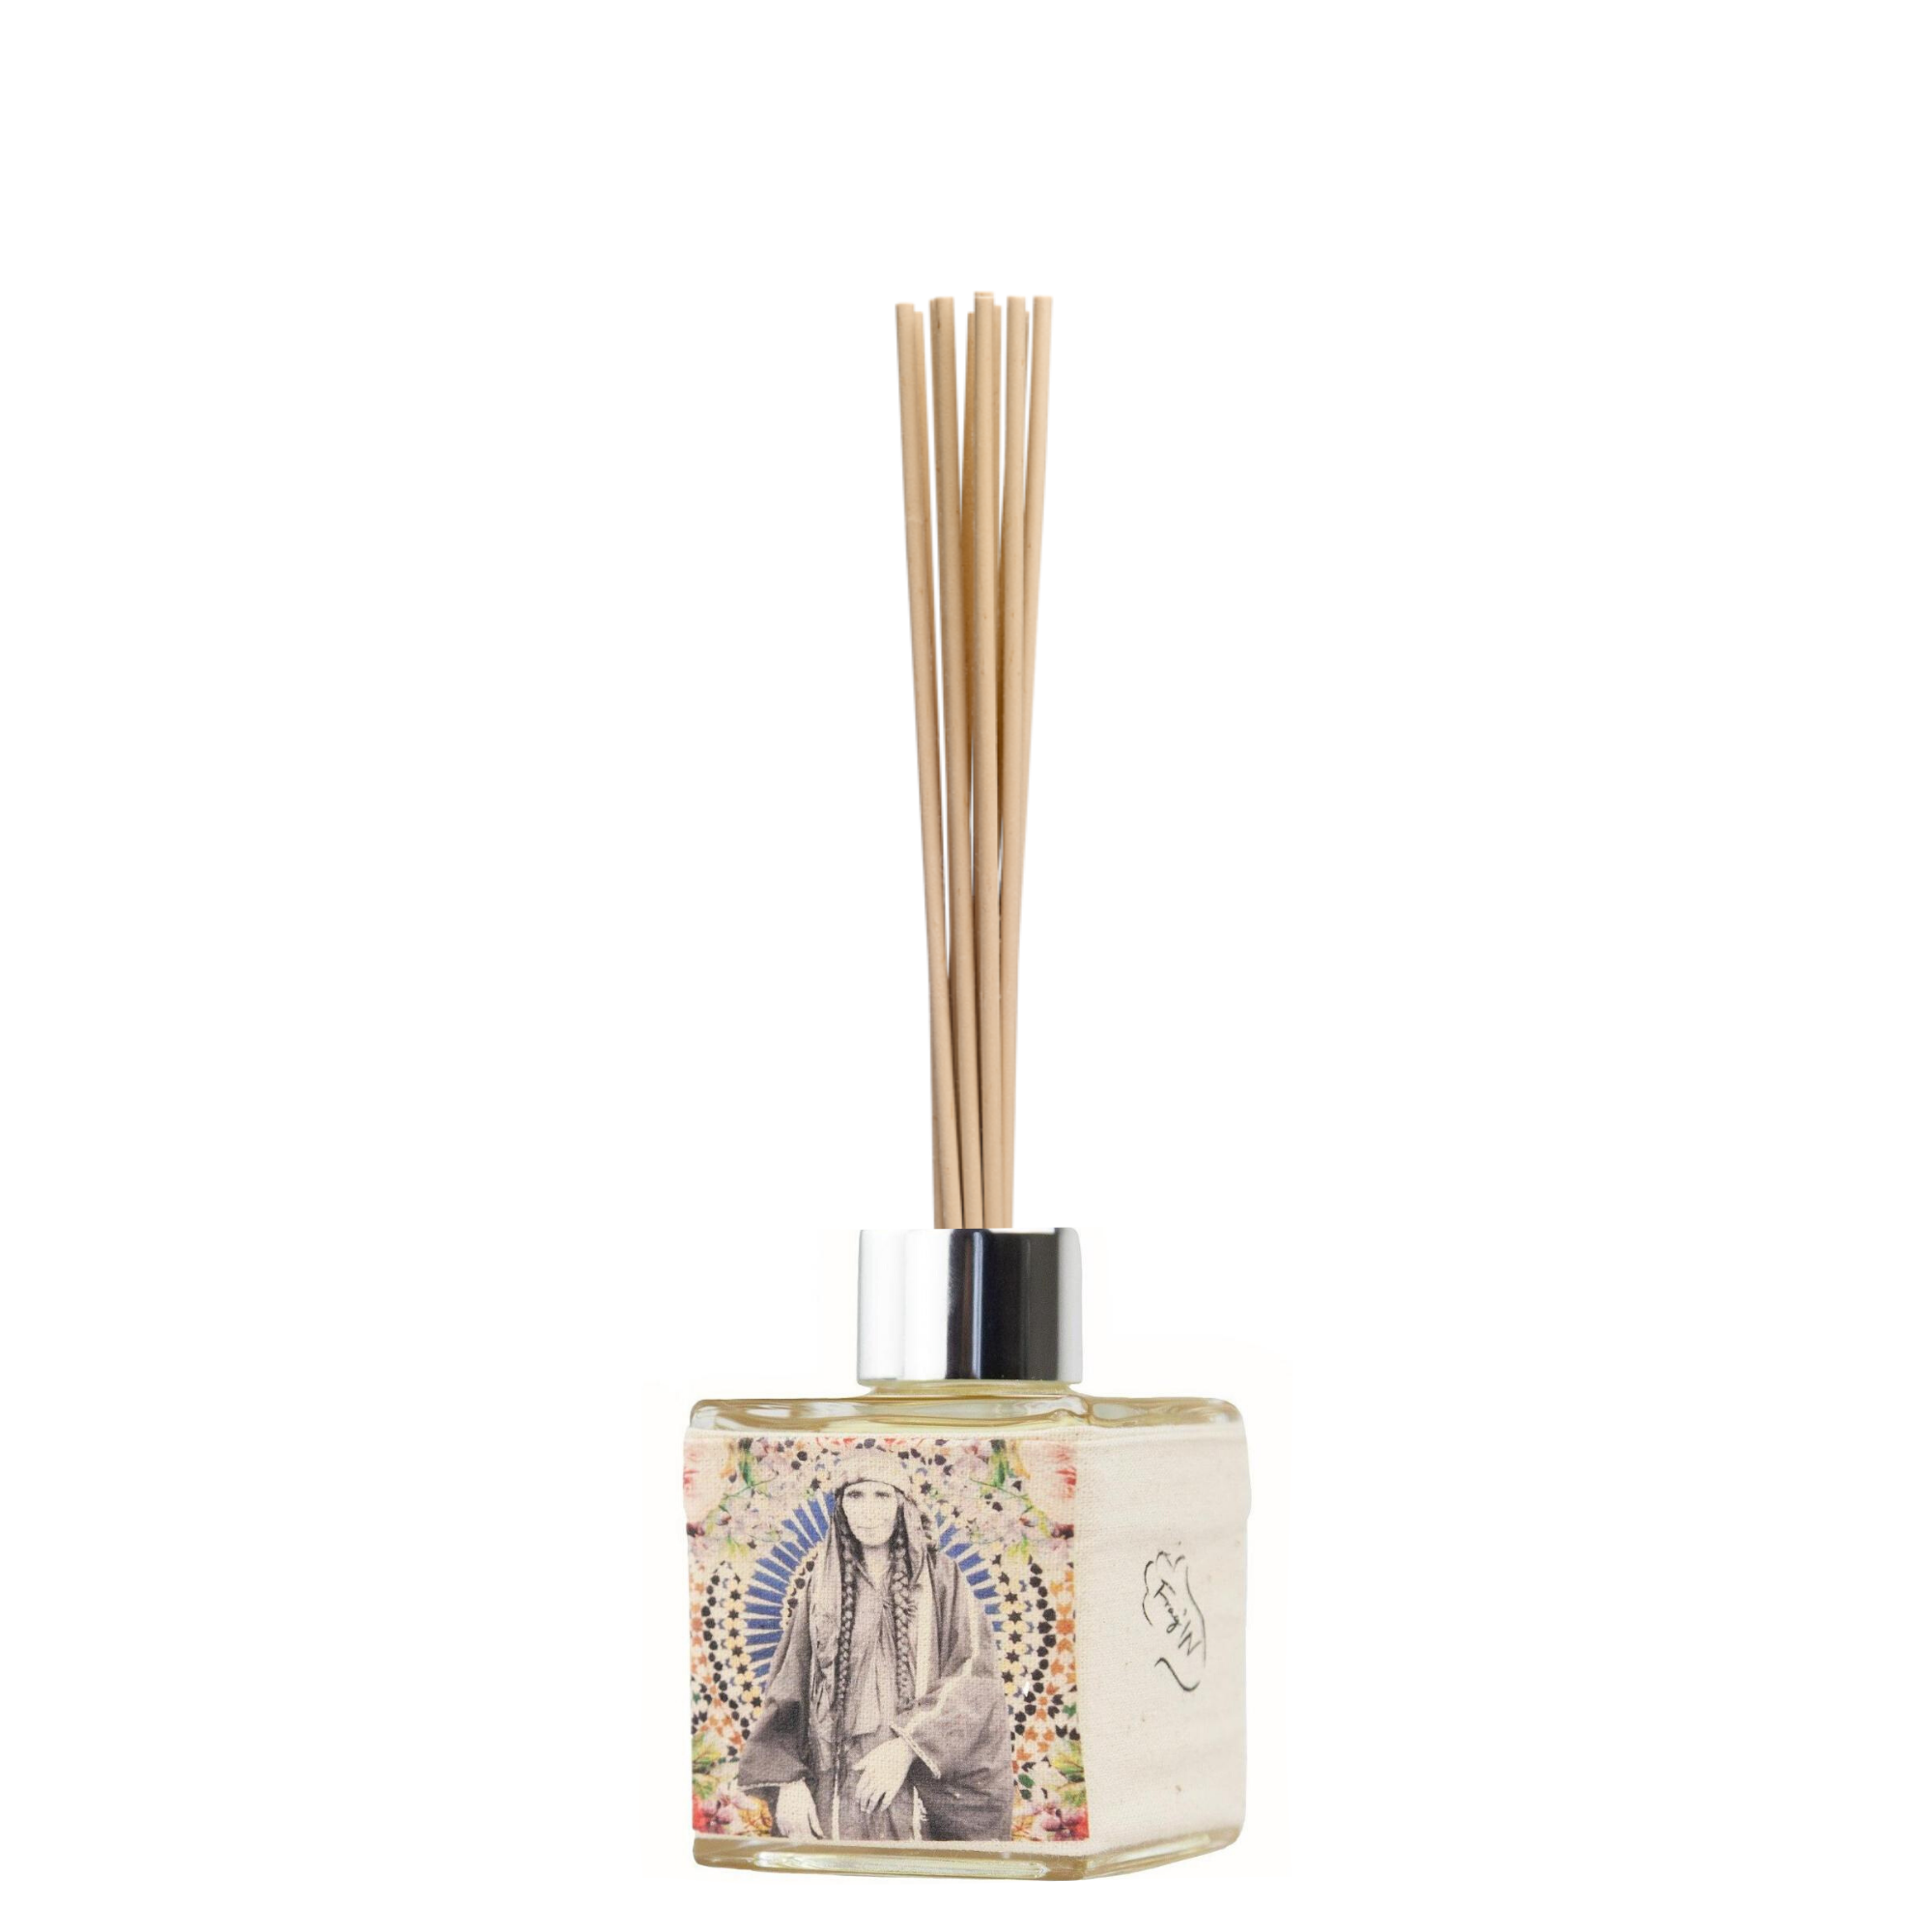 Fragrance Reed Diffuser (6Moroccan Scents) 100 ml/3.3 oz